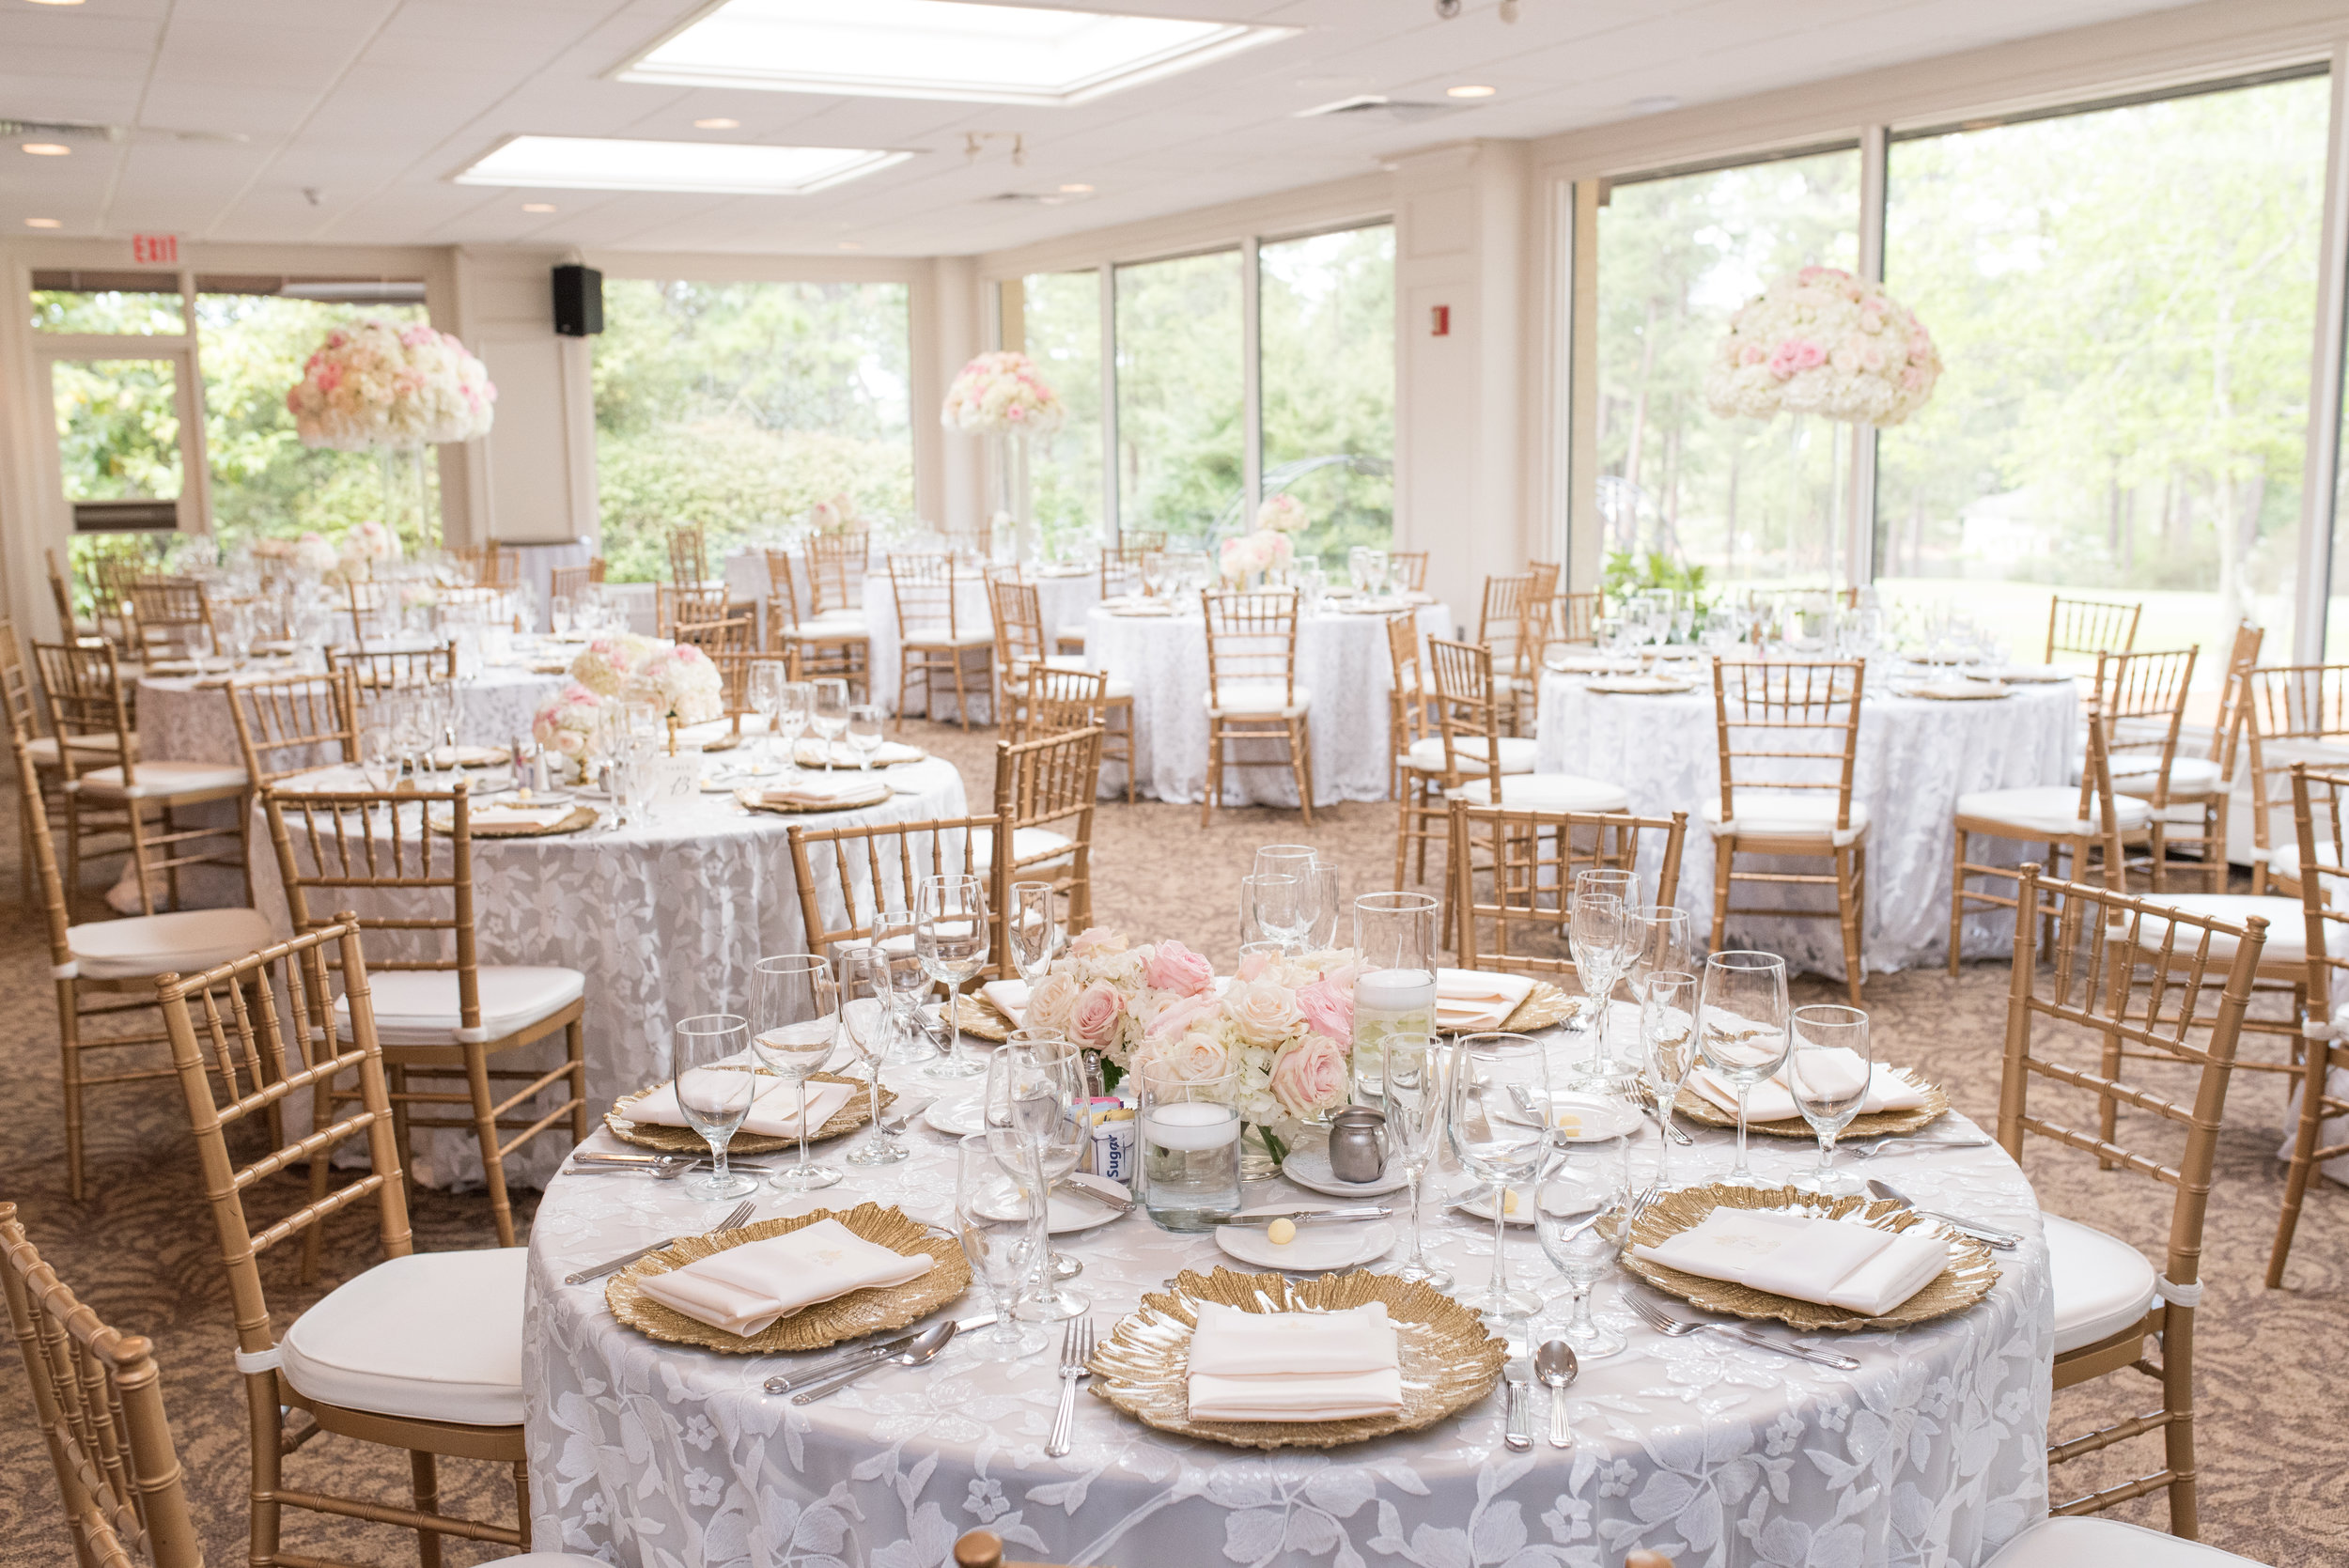 Blush Pink and Lace Wedding Reception CCNC.JPG